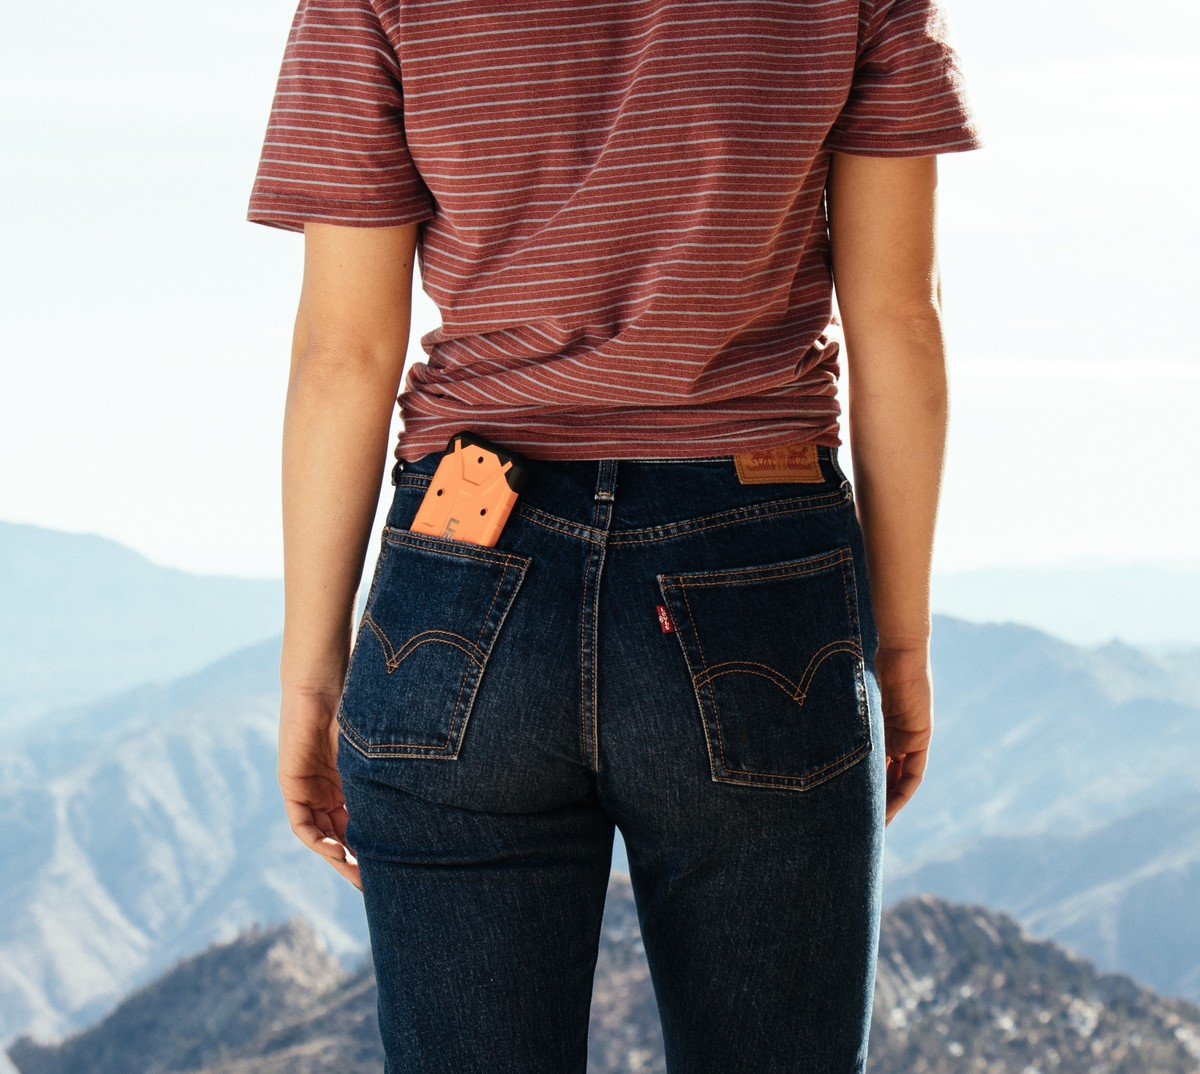 woman-wearing-levis-on-cliff